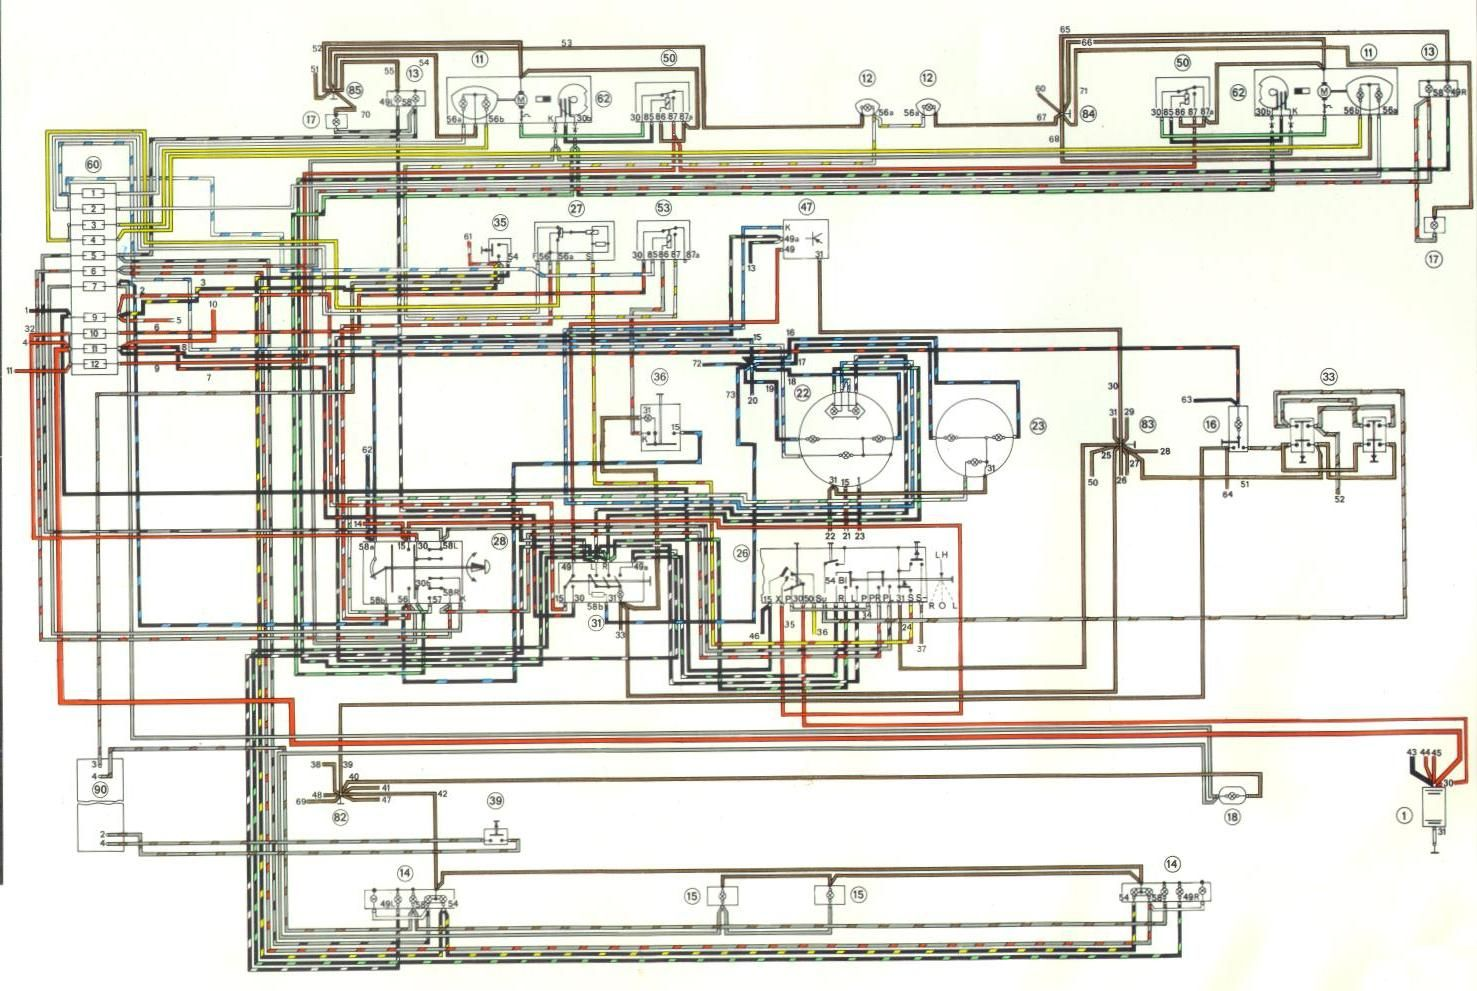 hight resolution of 1974 porsche 914 engine diagram blog wiring diagramelectrical diagram 73 porsche 914 part 1 misc porsche